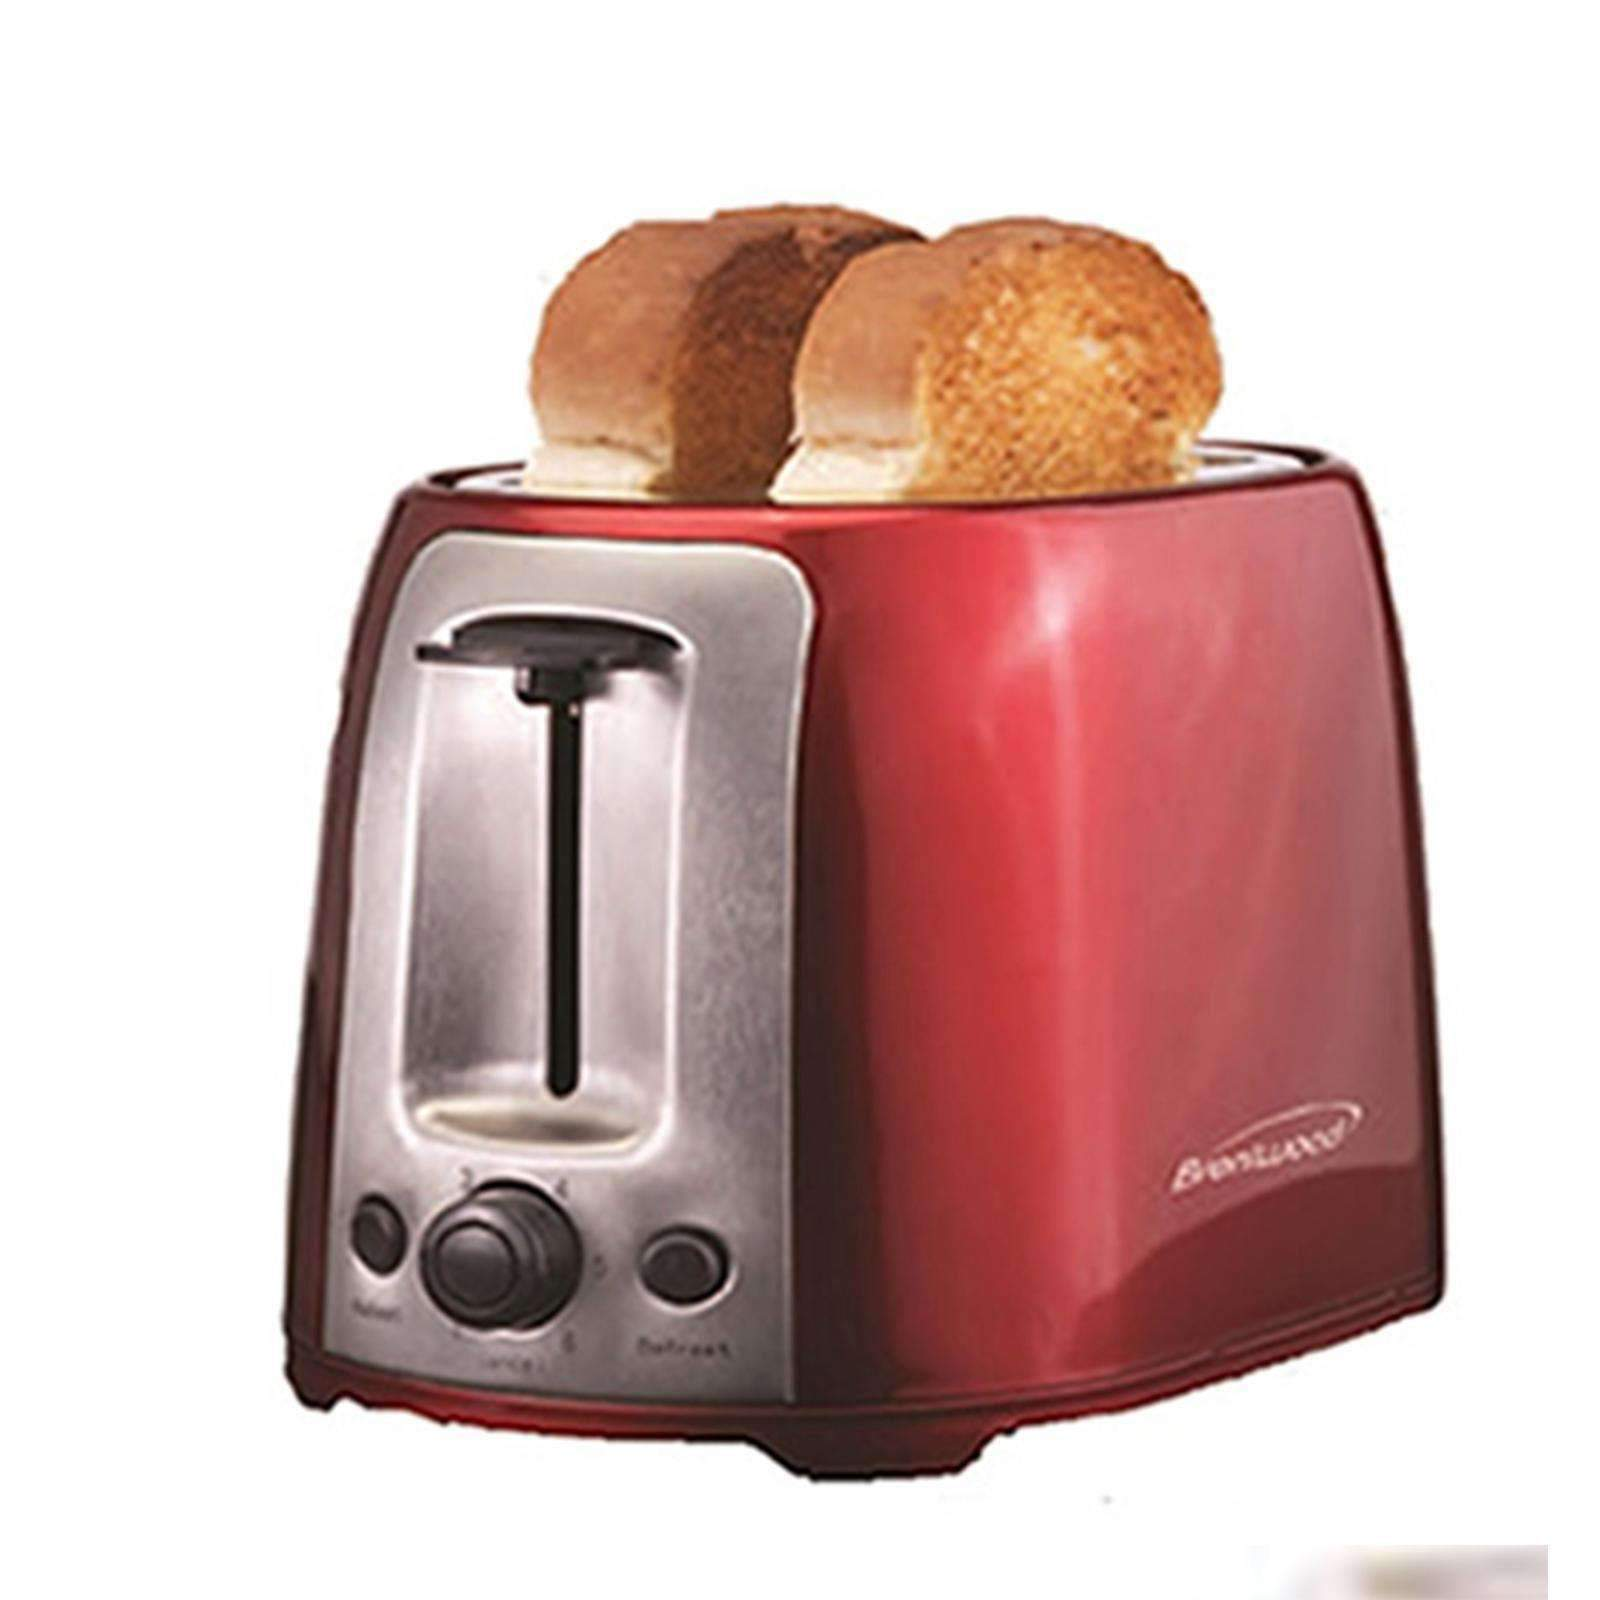 Brentwood 2 Slice Cool Touch Toaster ; Red and Stainless Steel Kitchen Appliances Brentwood Default Title